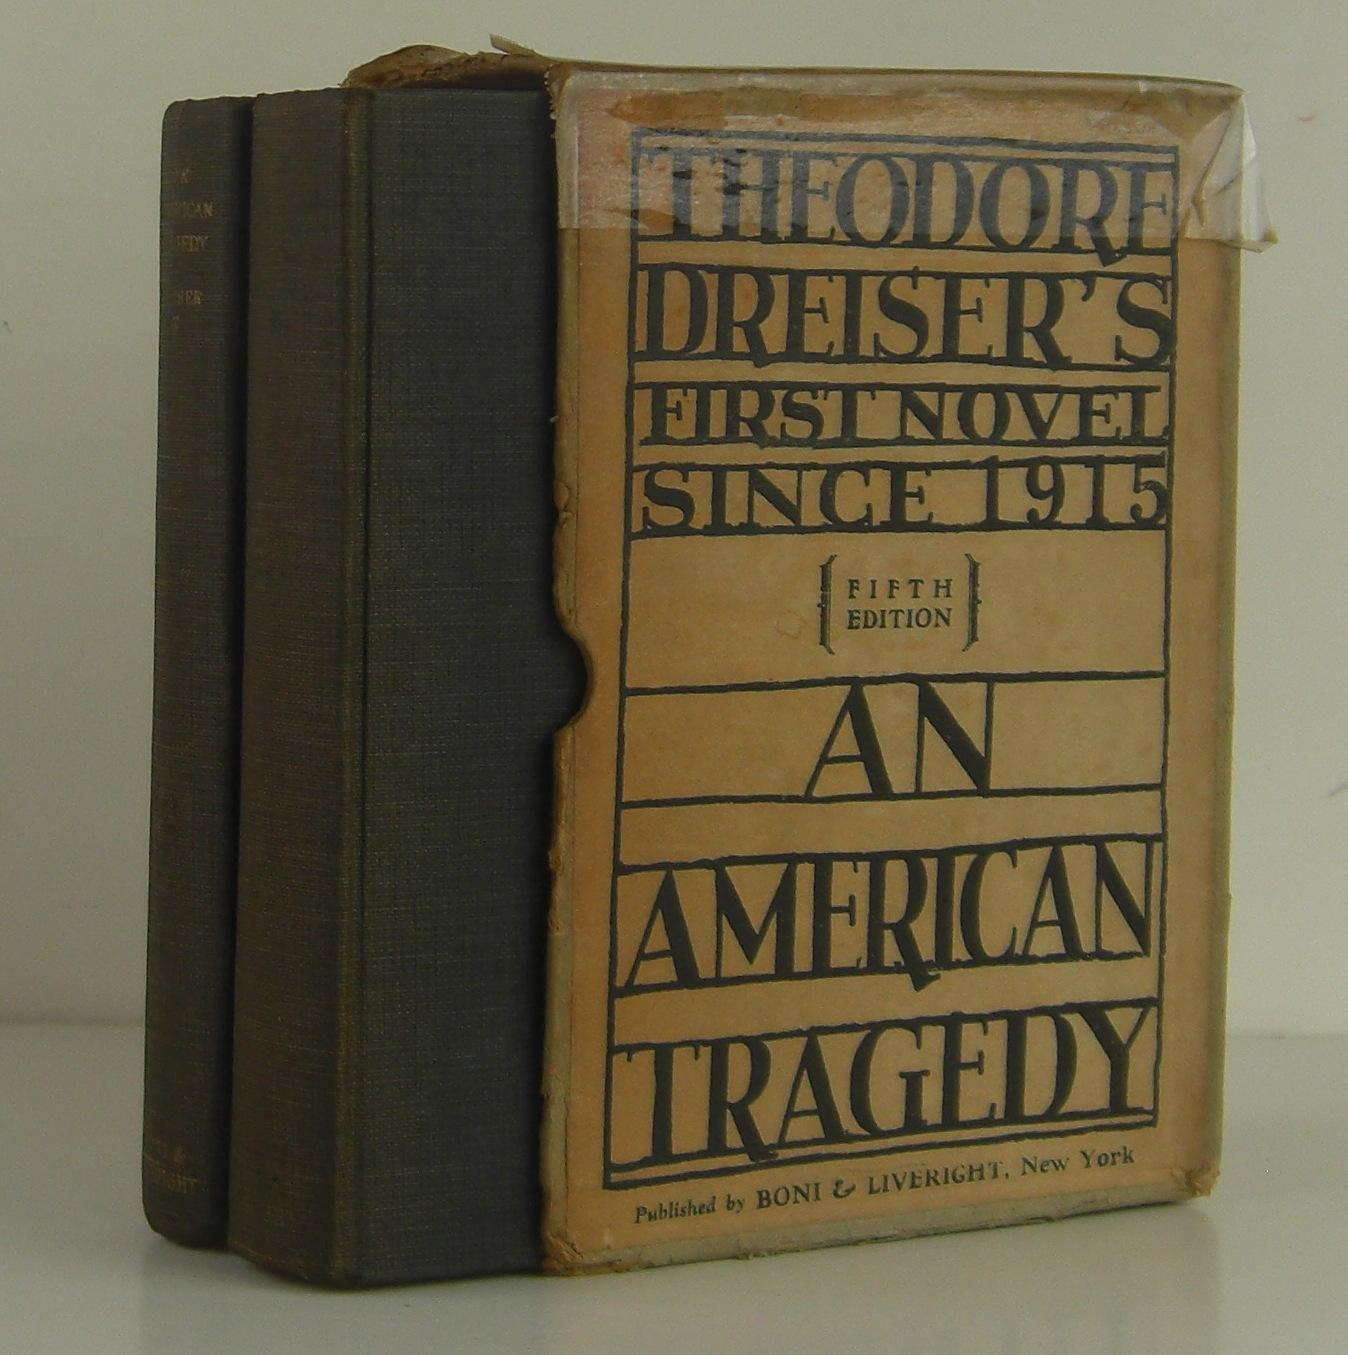 american tragedy by theodore dreiser Theodore dreiser was no stylist, but there's a terrific momentum to his unflinching novel about a country girl's american dream • robert mccrum introduces the series.